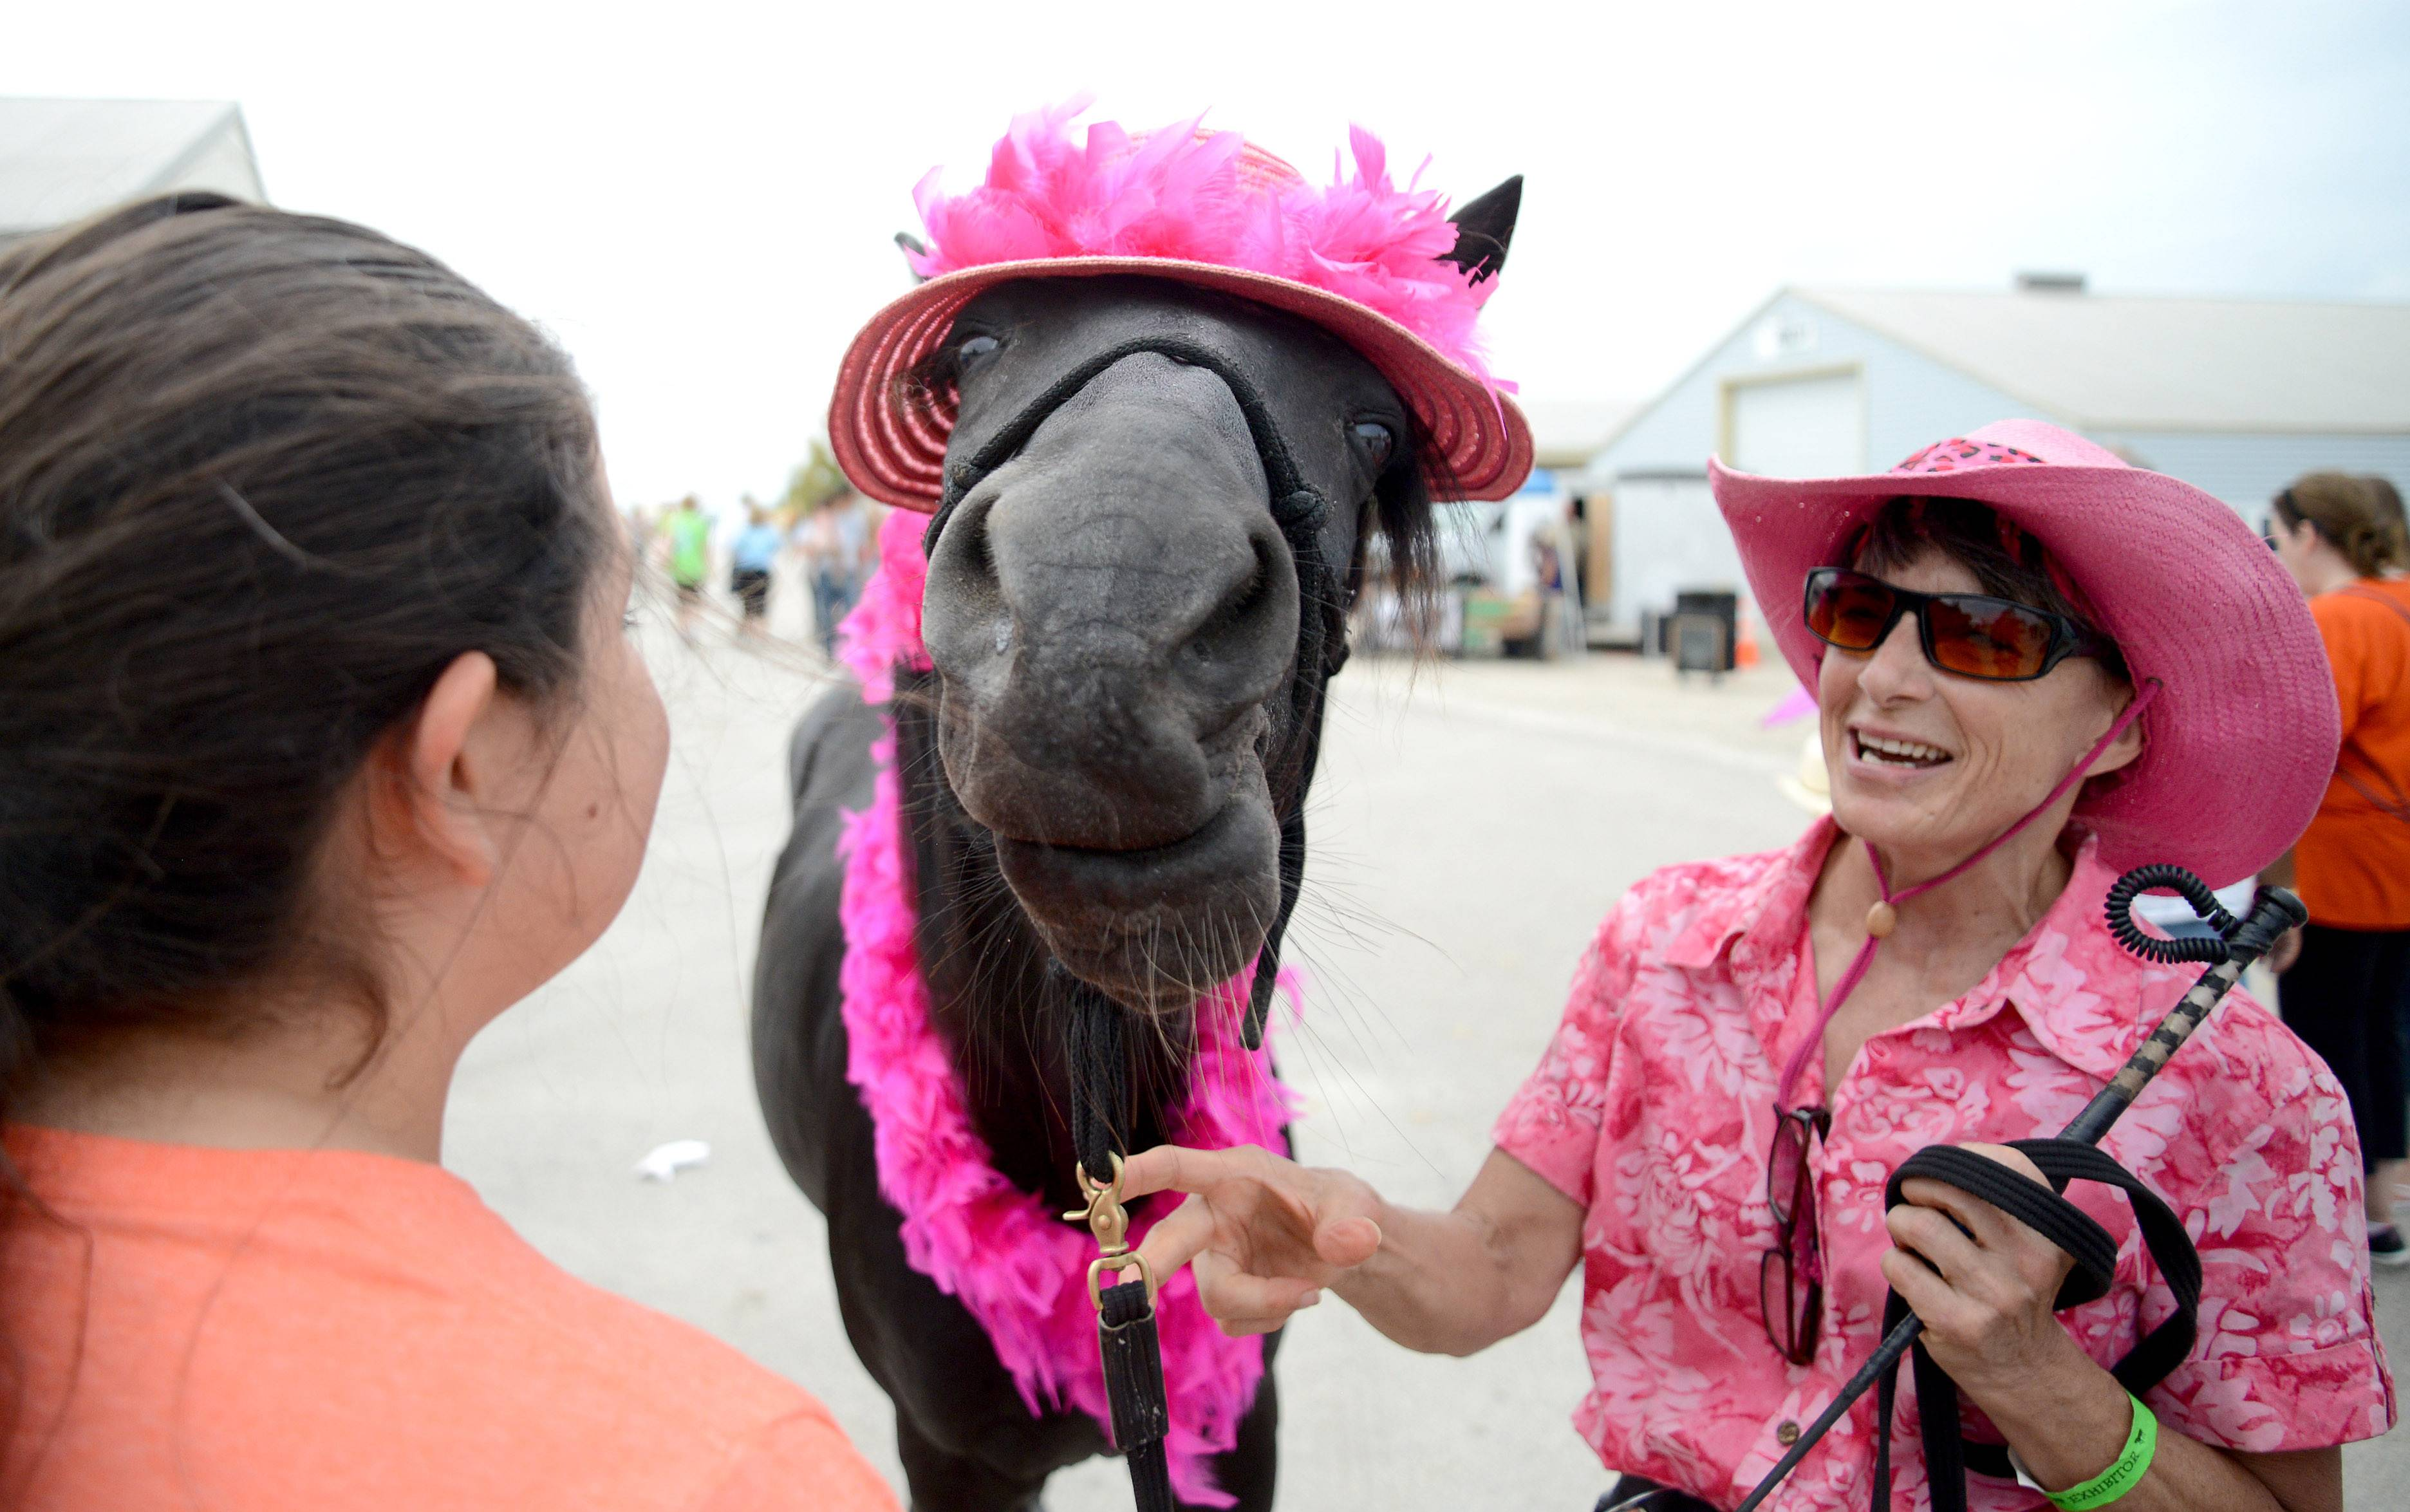 Magic the horse puckers up to plant a kiss on the cheek of Lily Ocampo, 11, of Wheeling at the Festival of the Horse and Drum at the Kane County Fairgrounds in St. Charles Saturday. Magic and her owner, Peggy Gower of Wayne, were walking around the grounds showing off tricks.